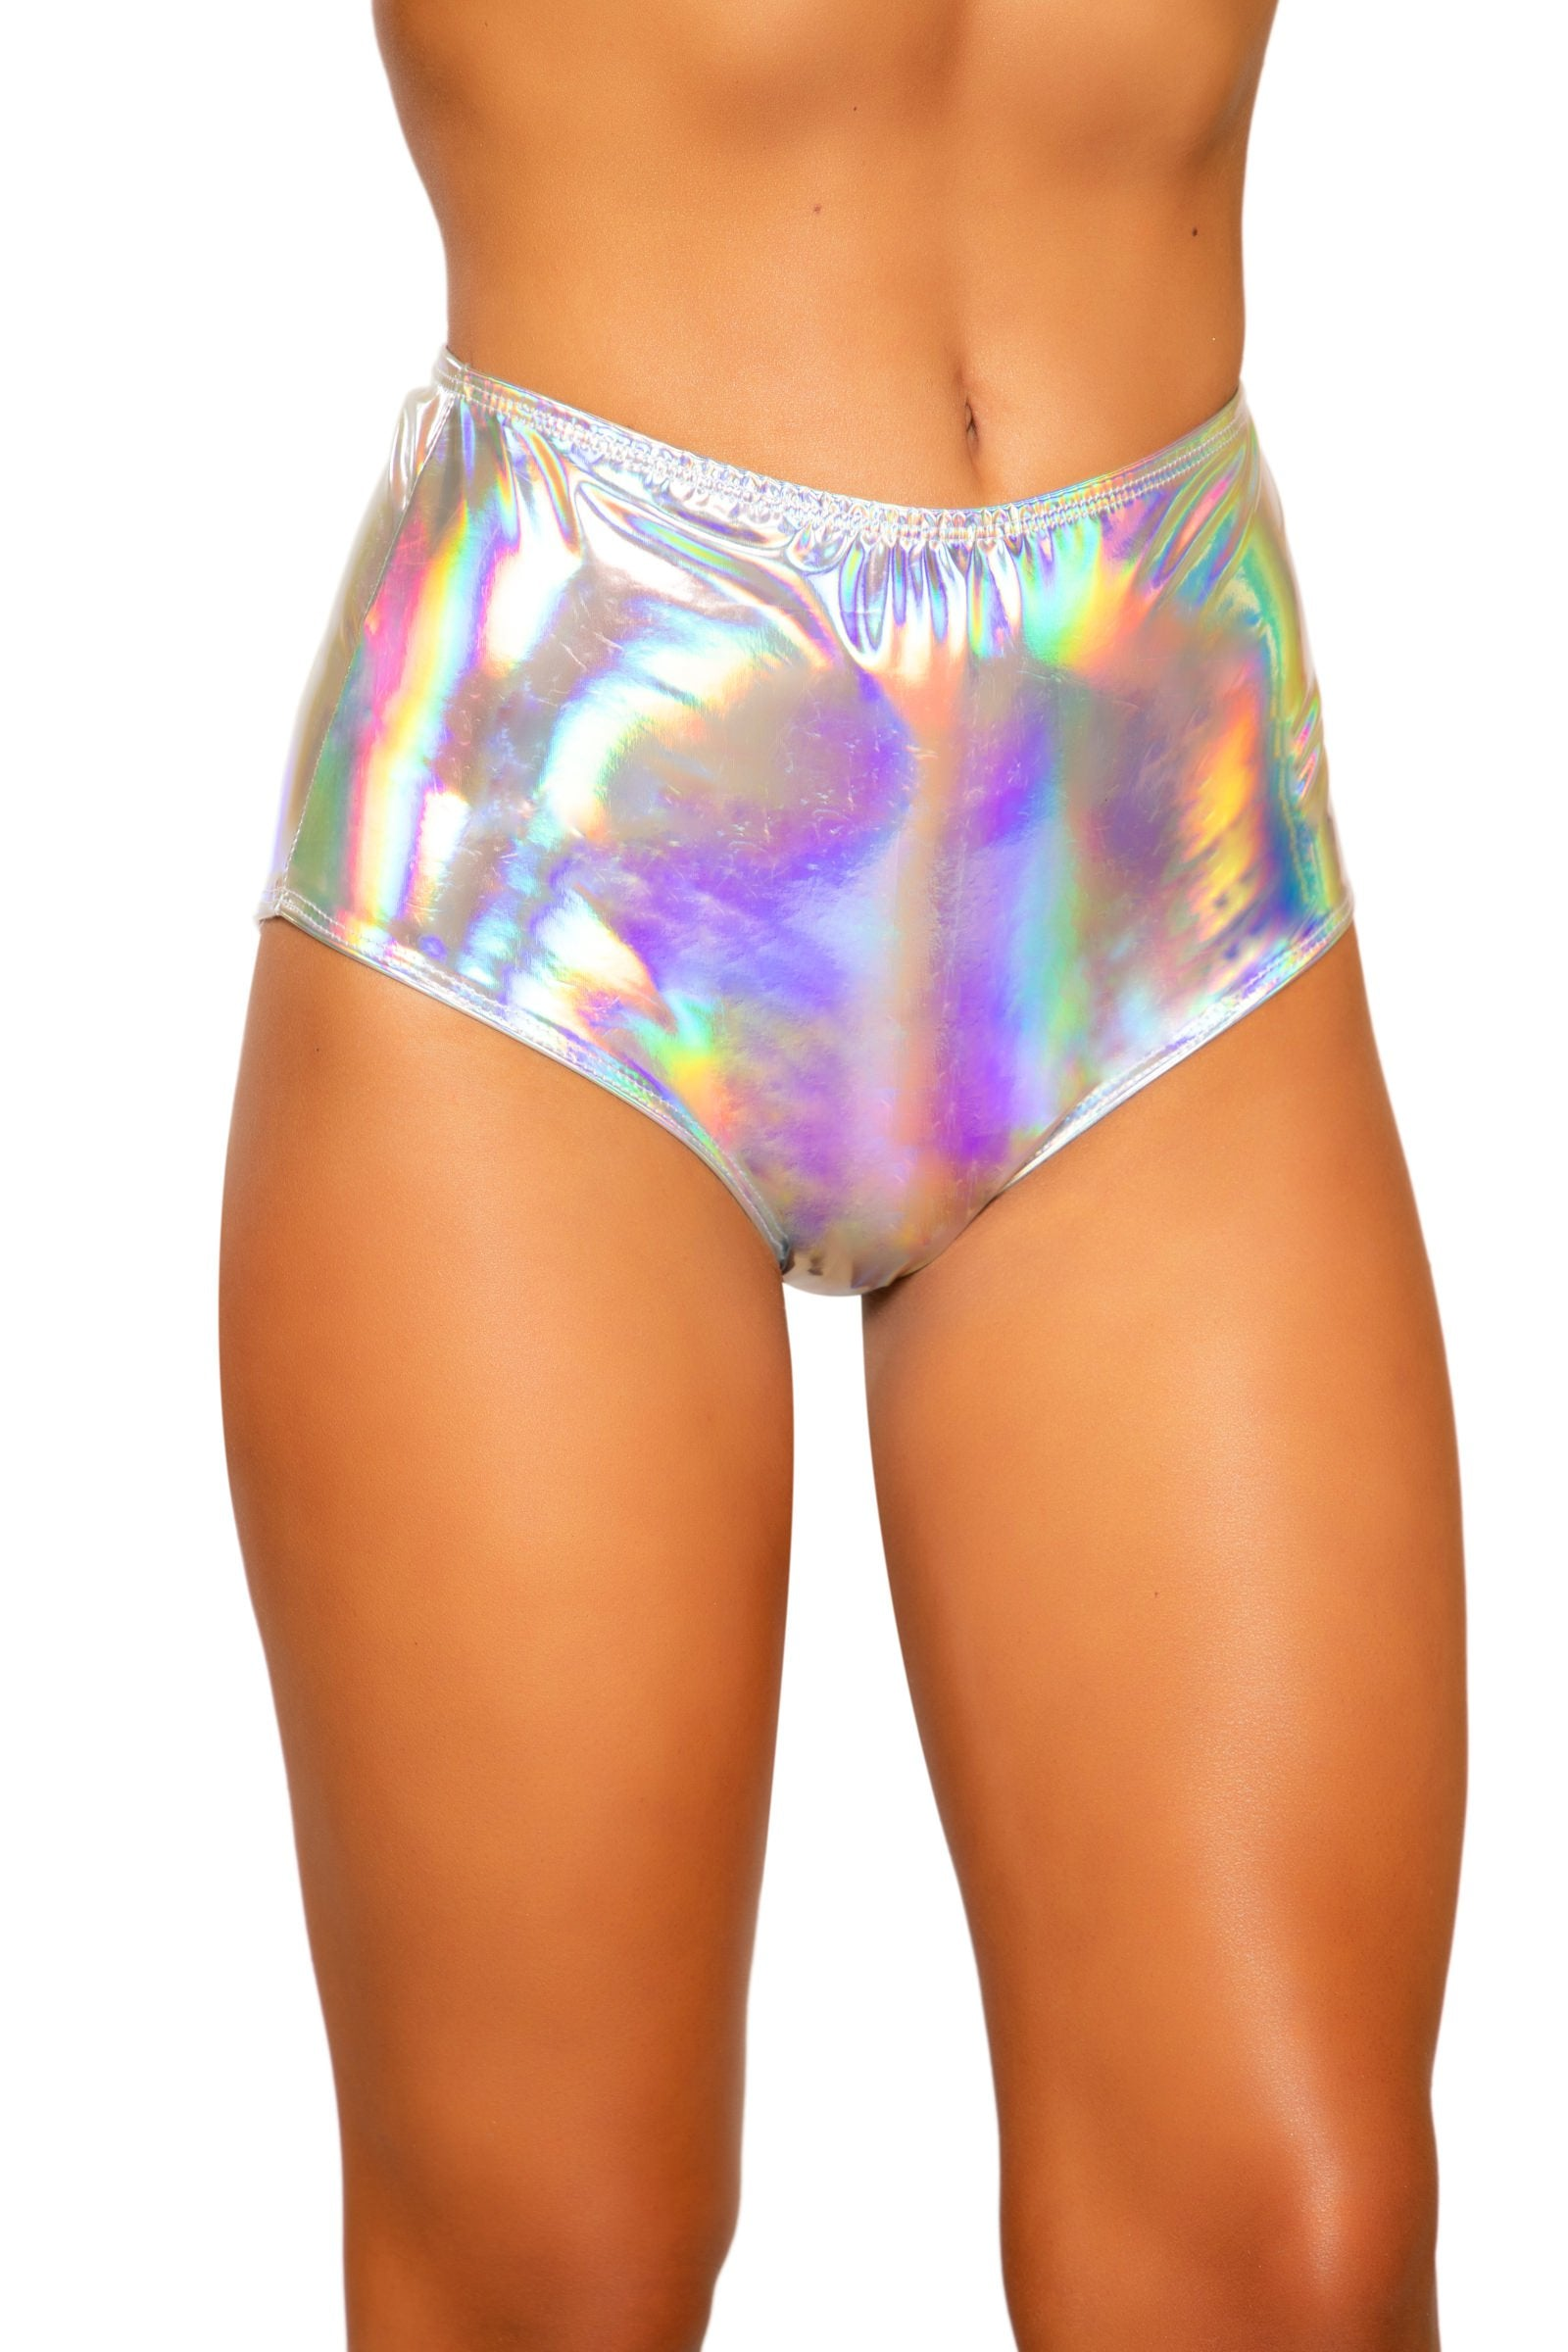 3704 - Iridescent High-Waisted Shorts with Zipper Closure